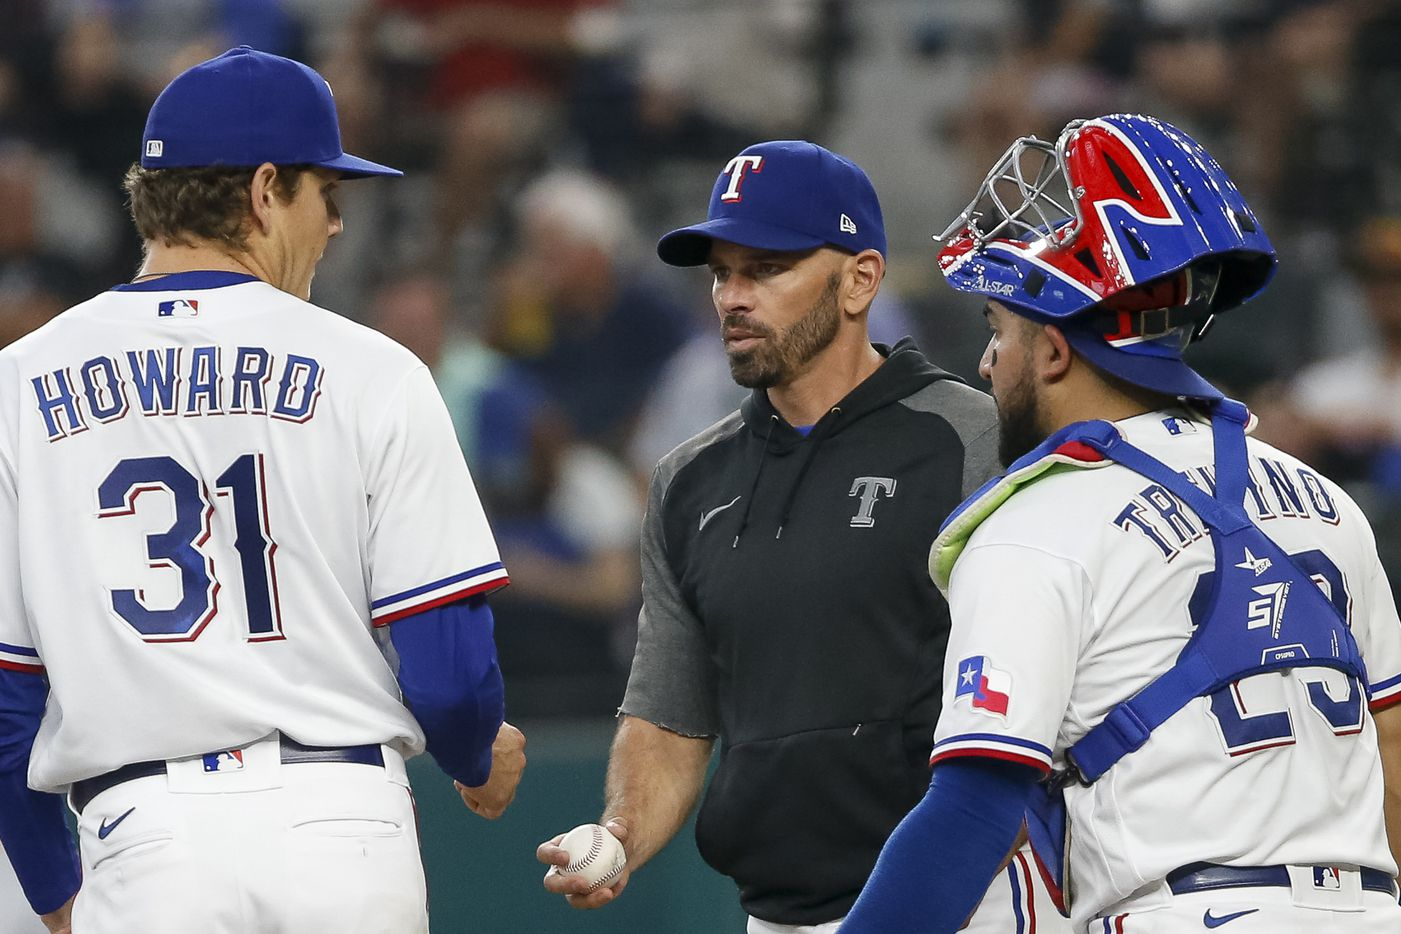 Texas Rangers manager Chris Woodward (8) removes Texas Rangers starting pitcher Spencer Howard (31) from the game during the third inning against the Los Angeles Angels at Globe Life Field on Thursday, Aug. 5, 2021, in Arlington. (Elias Valverde II/The Dallas Morning News)